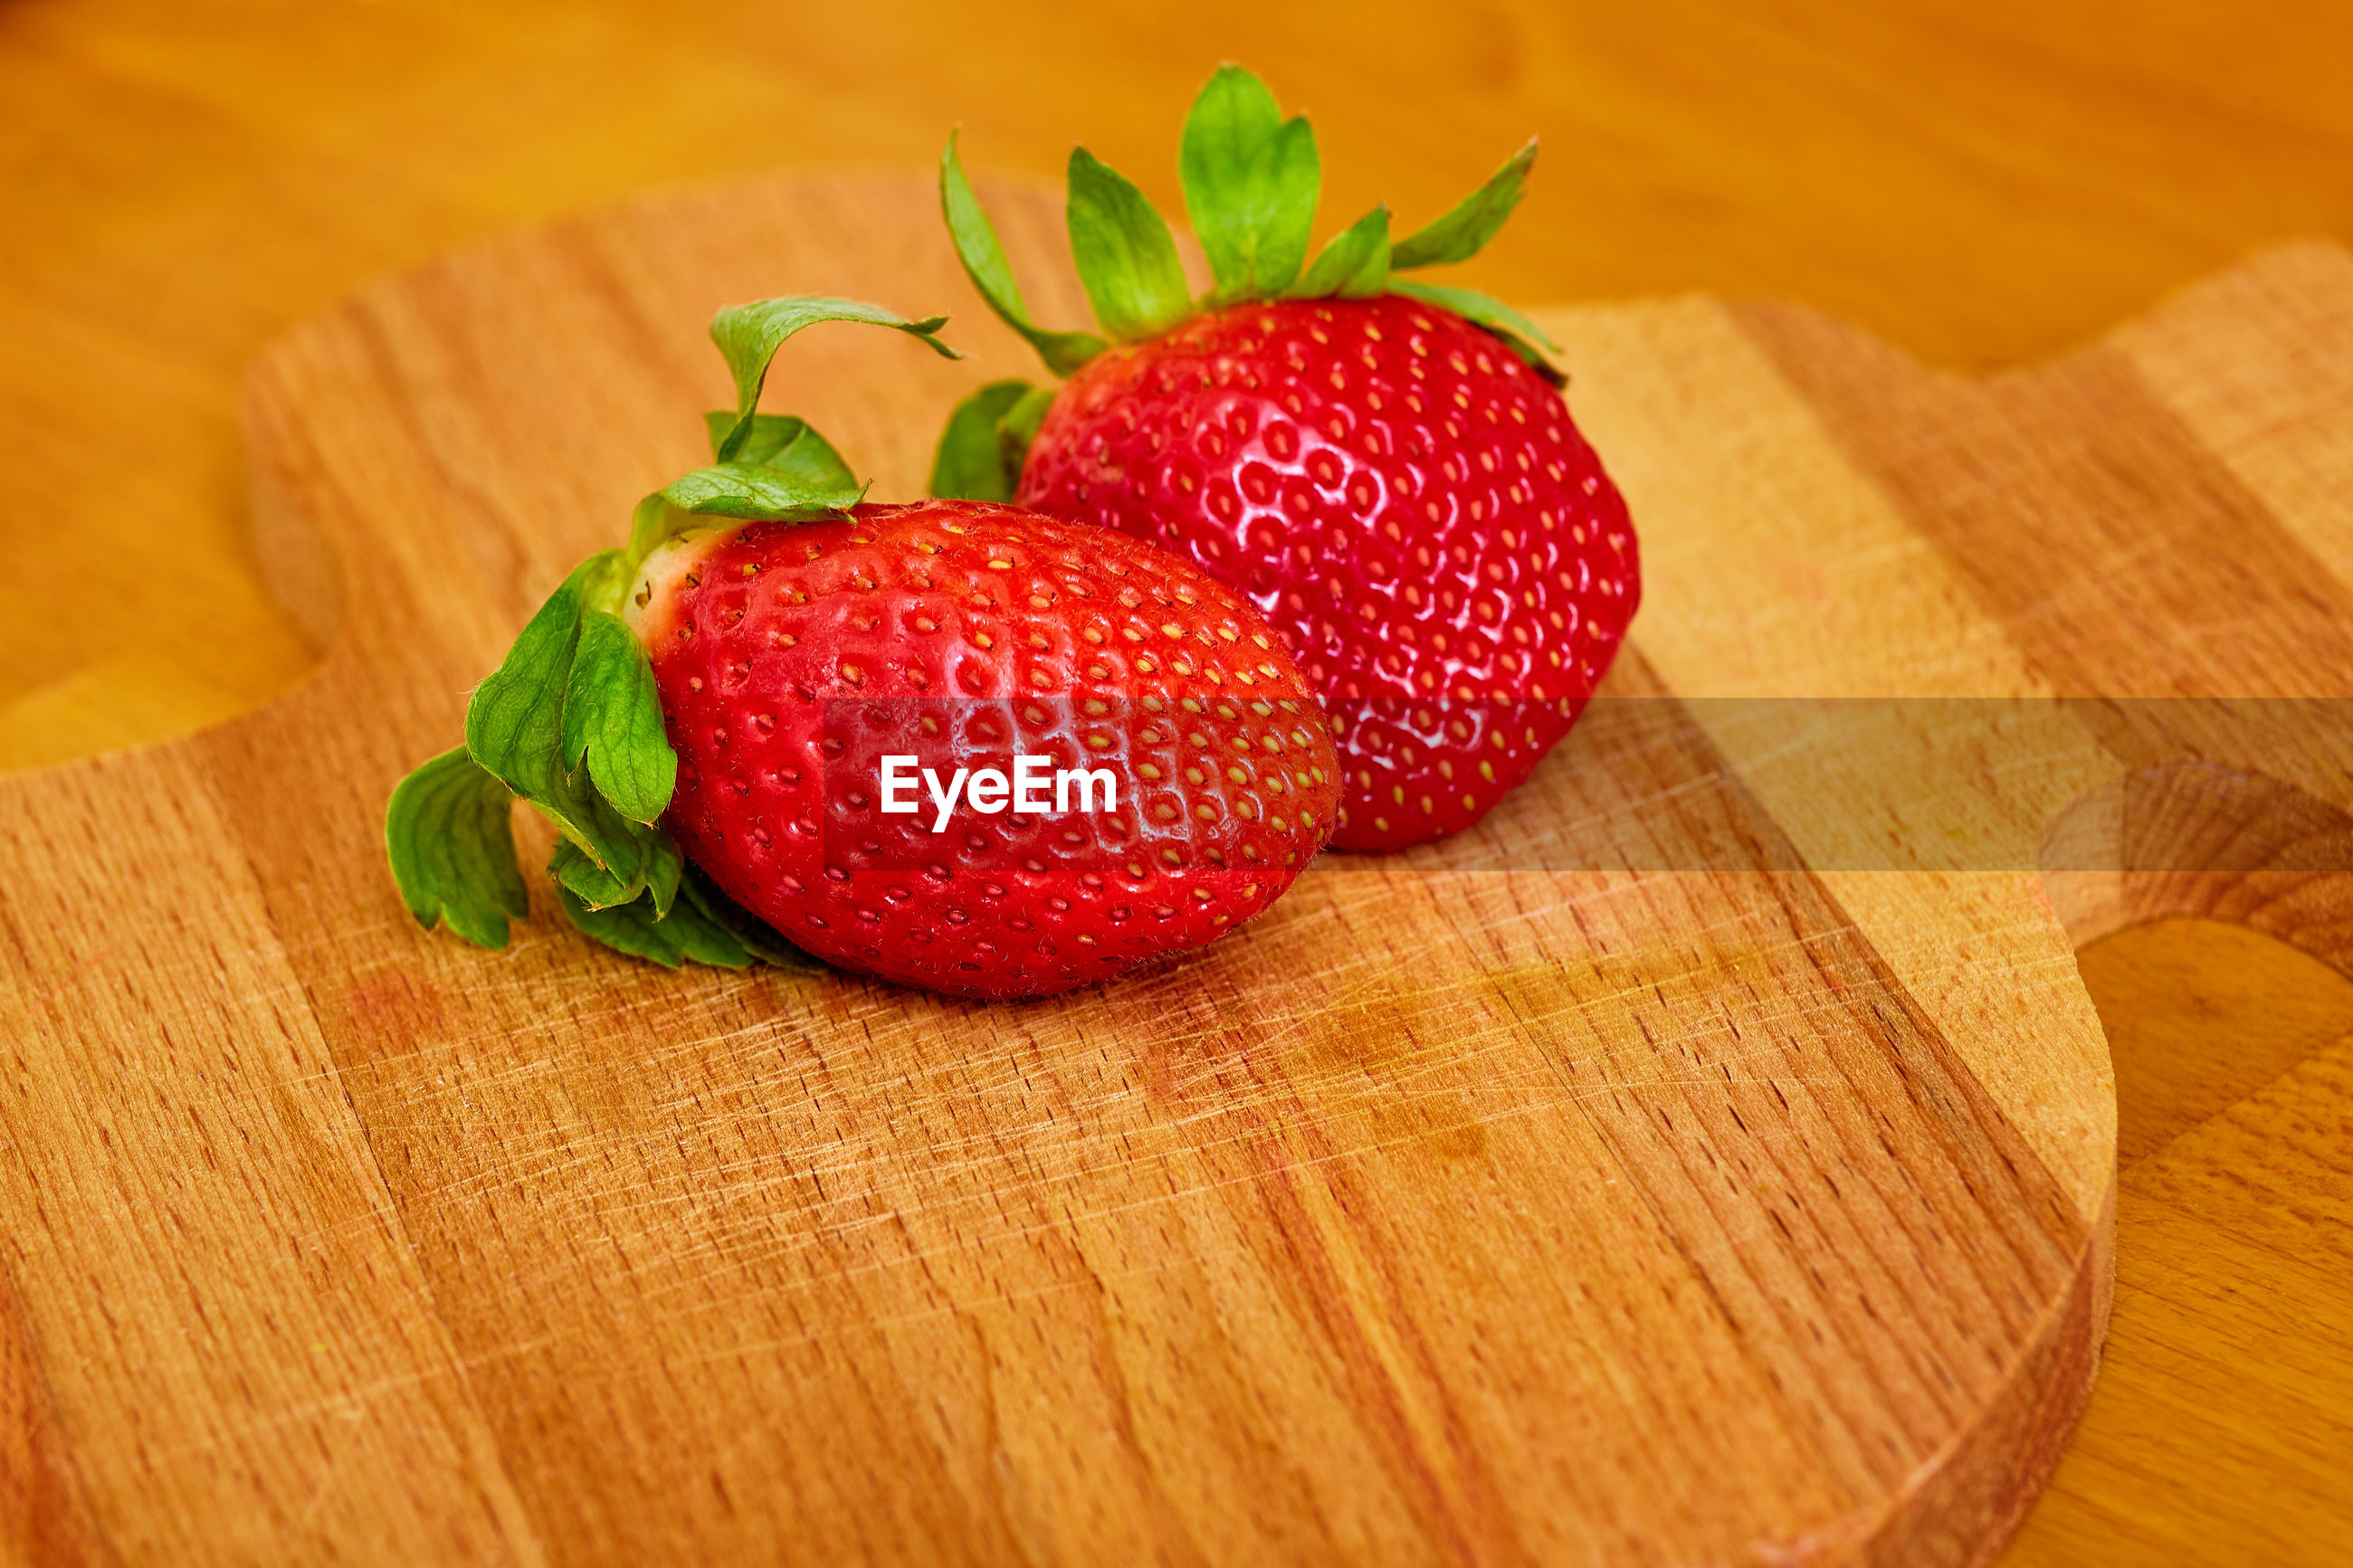 HIGH ANGLE VIEW OF STRAWBERRIES ON CUTTING BOARD